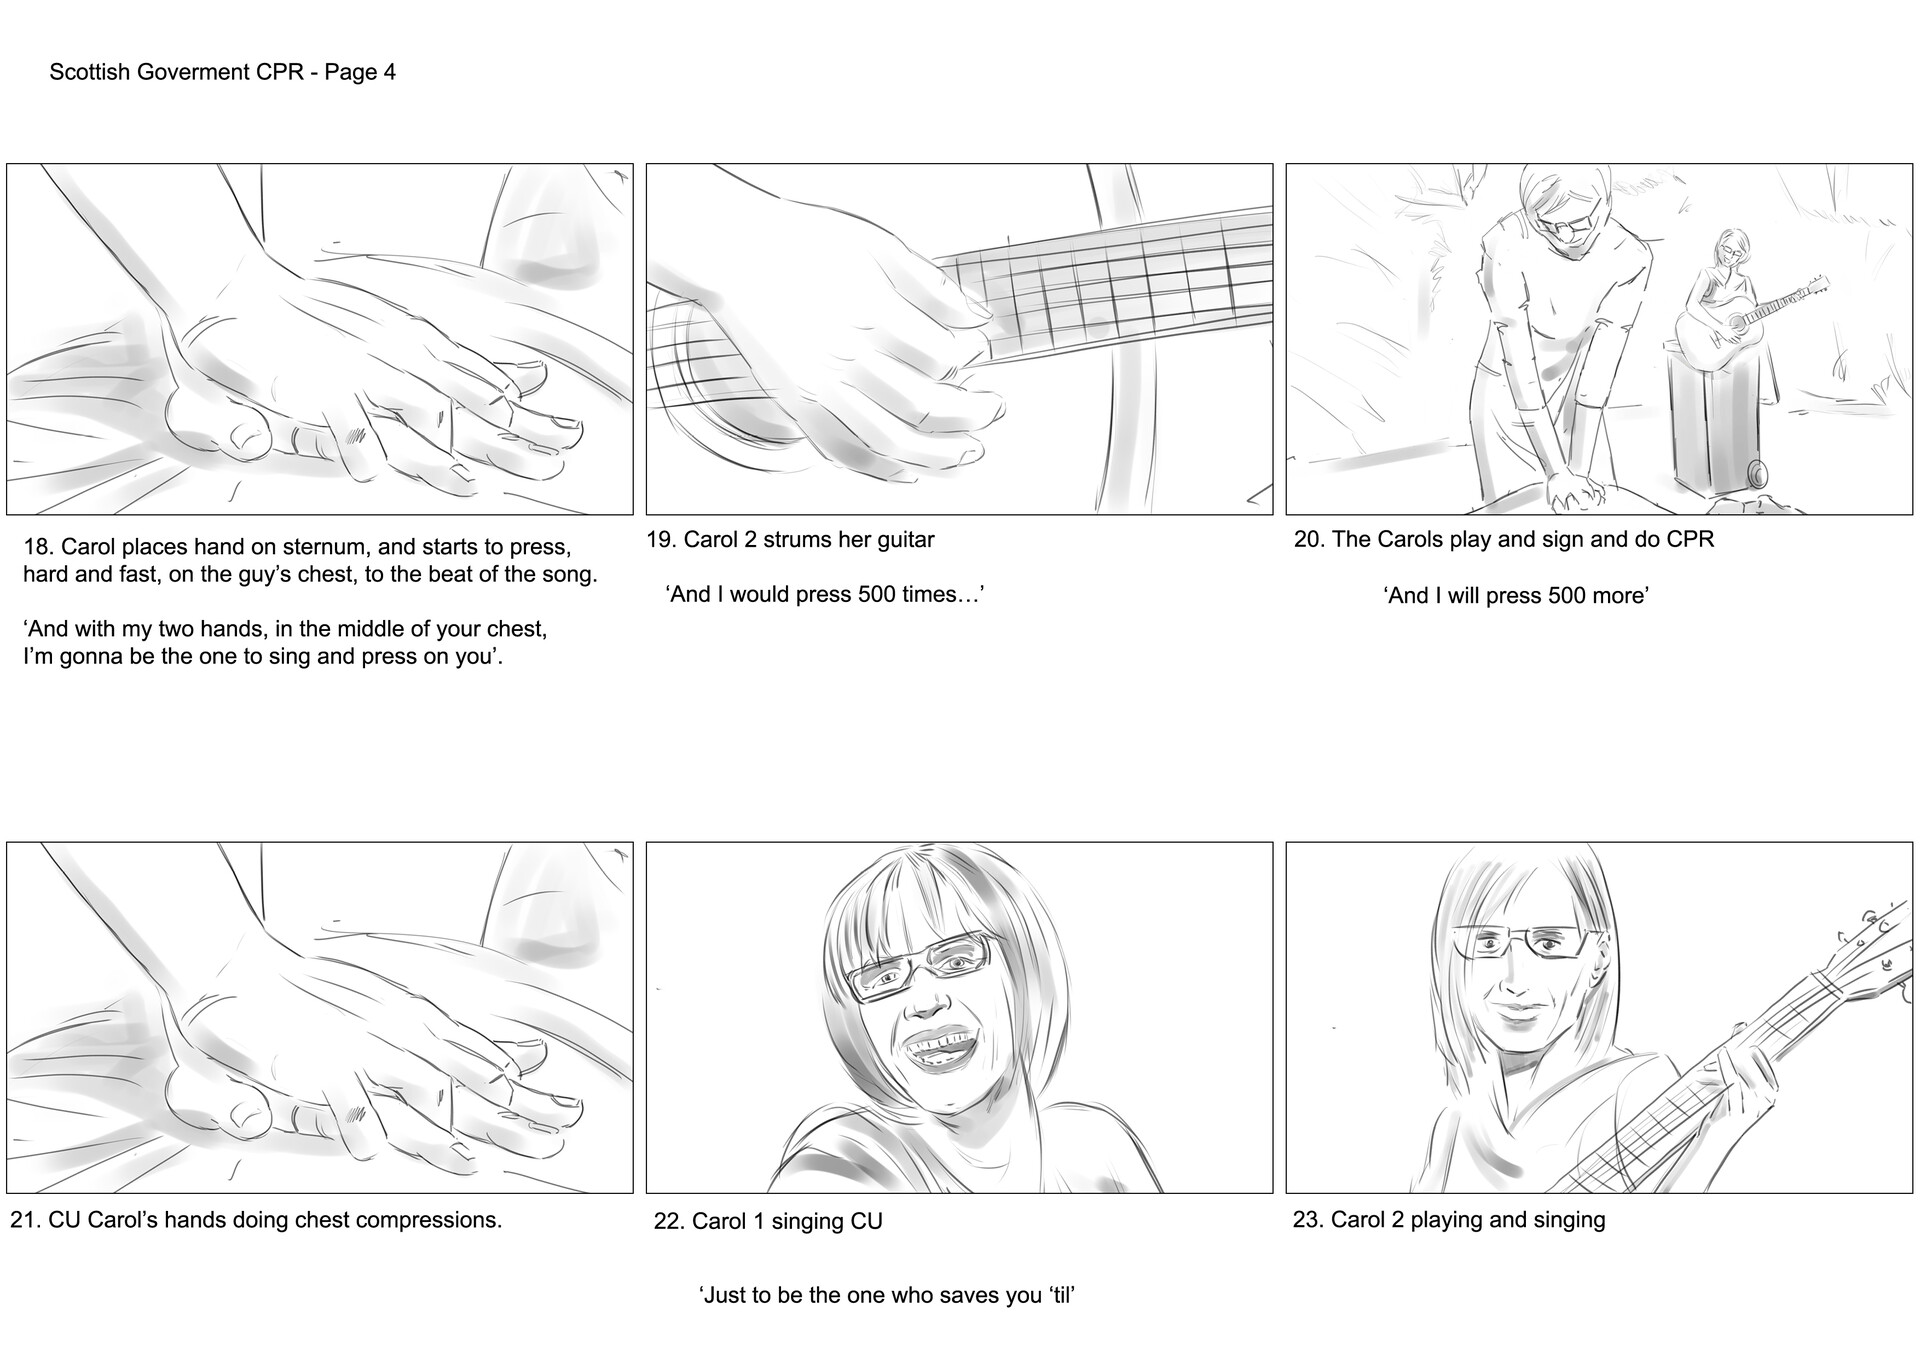 David newbigging save a life for scotland storyboards v2 4